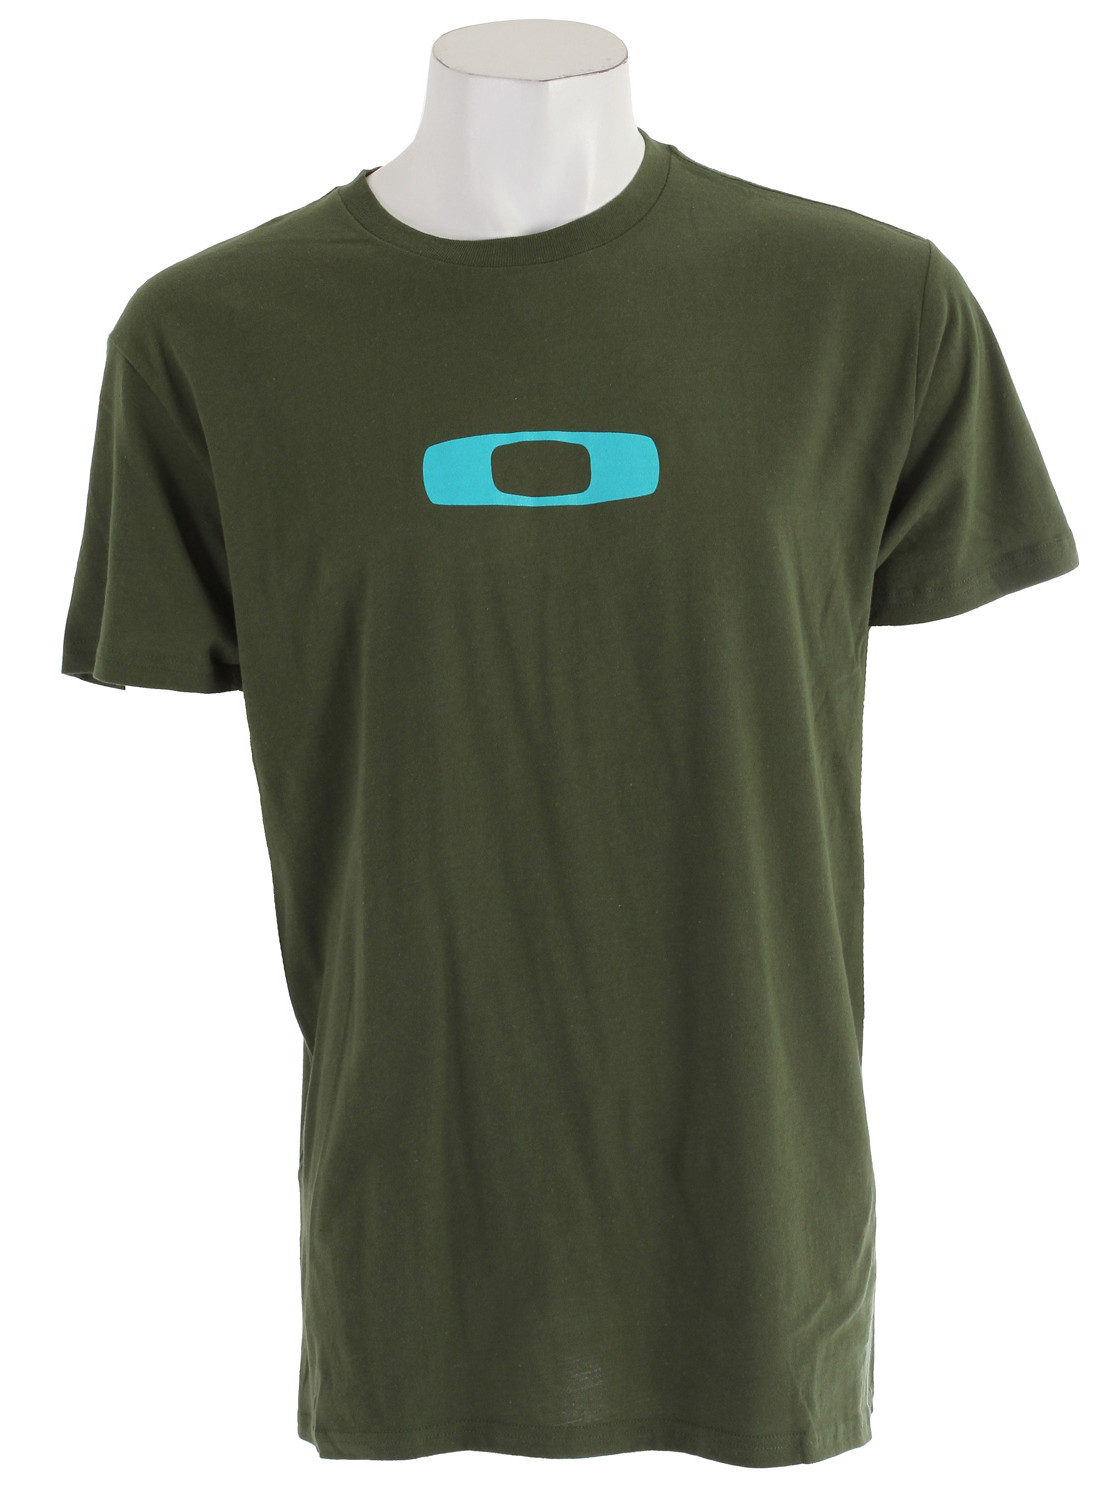 Oakley Square O T-Shirt Dark Forest  oakley-square-o-tee-drk-forest-11.jpg